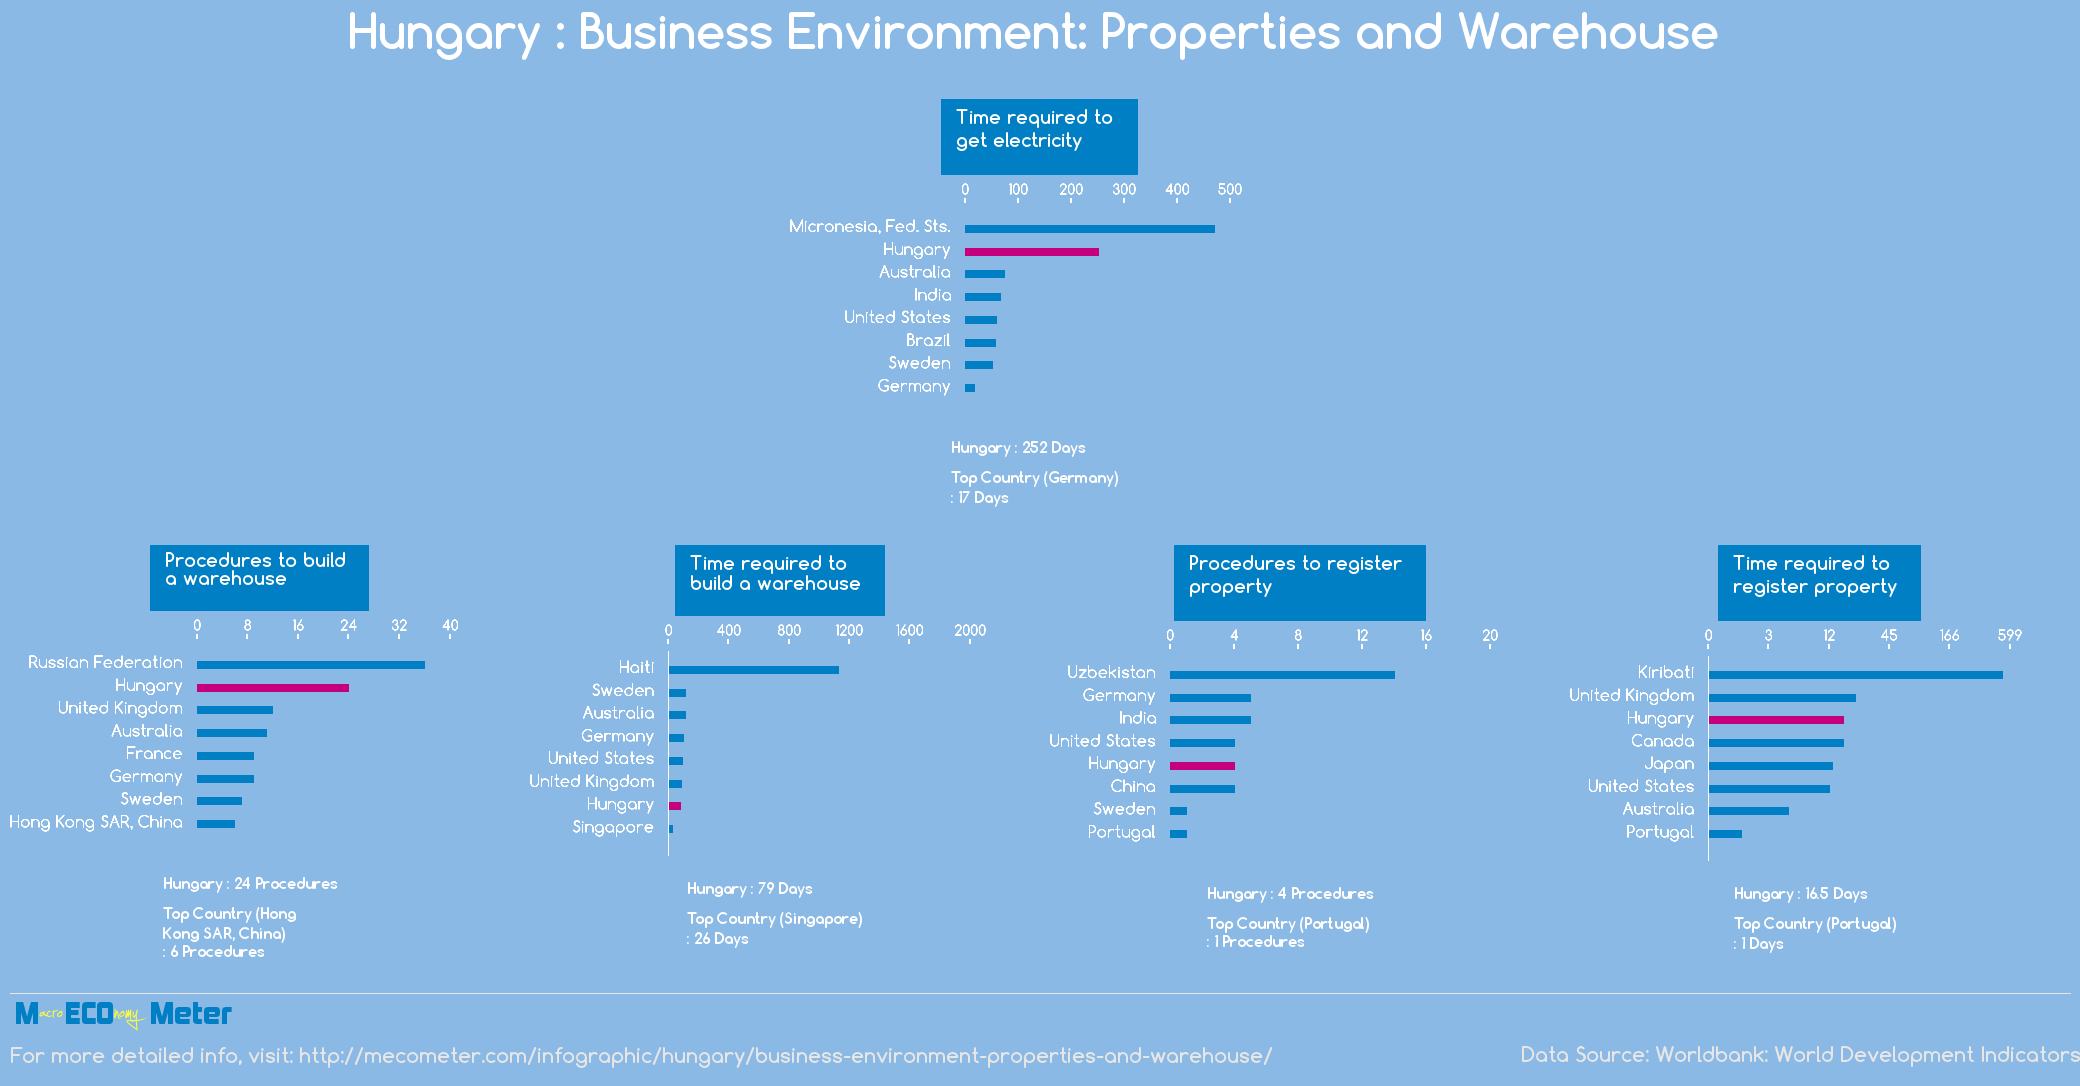 Hungary : Business Environment: Properties and Warehouse